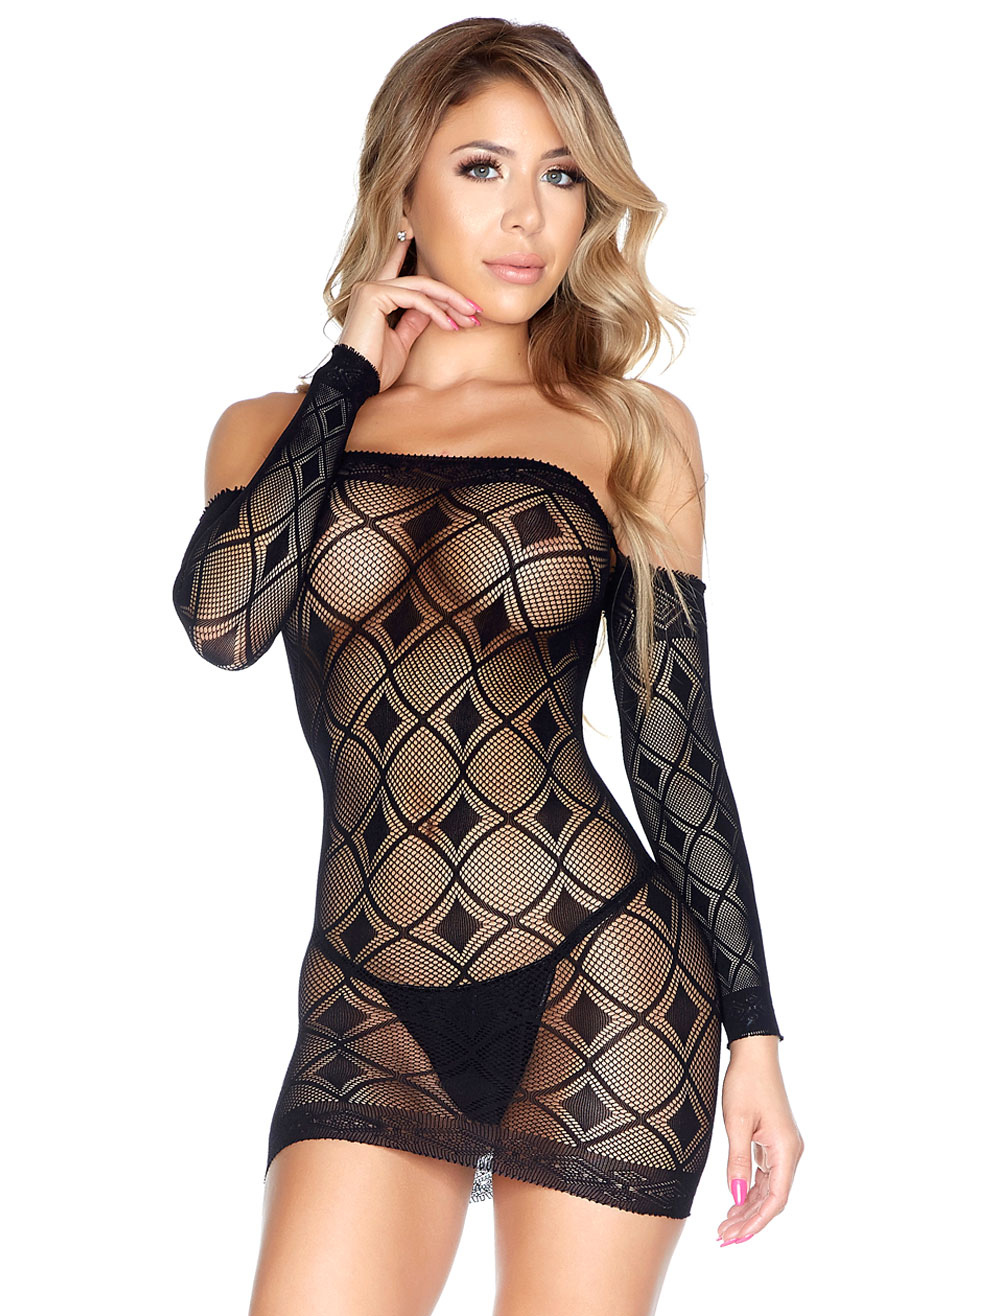 b7fff9c73ae0 ... Black Sexy Chemises Women s Off The Shoulder Long Sleeve Sheer Slim Fit Mini  Dress Lingerie With. 1. 35%OFF. Color Black